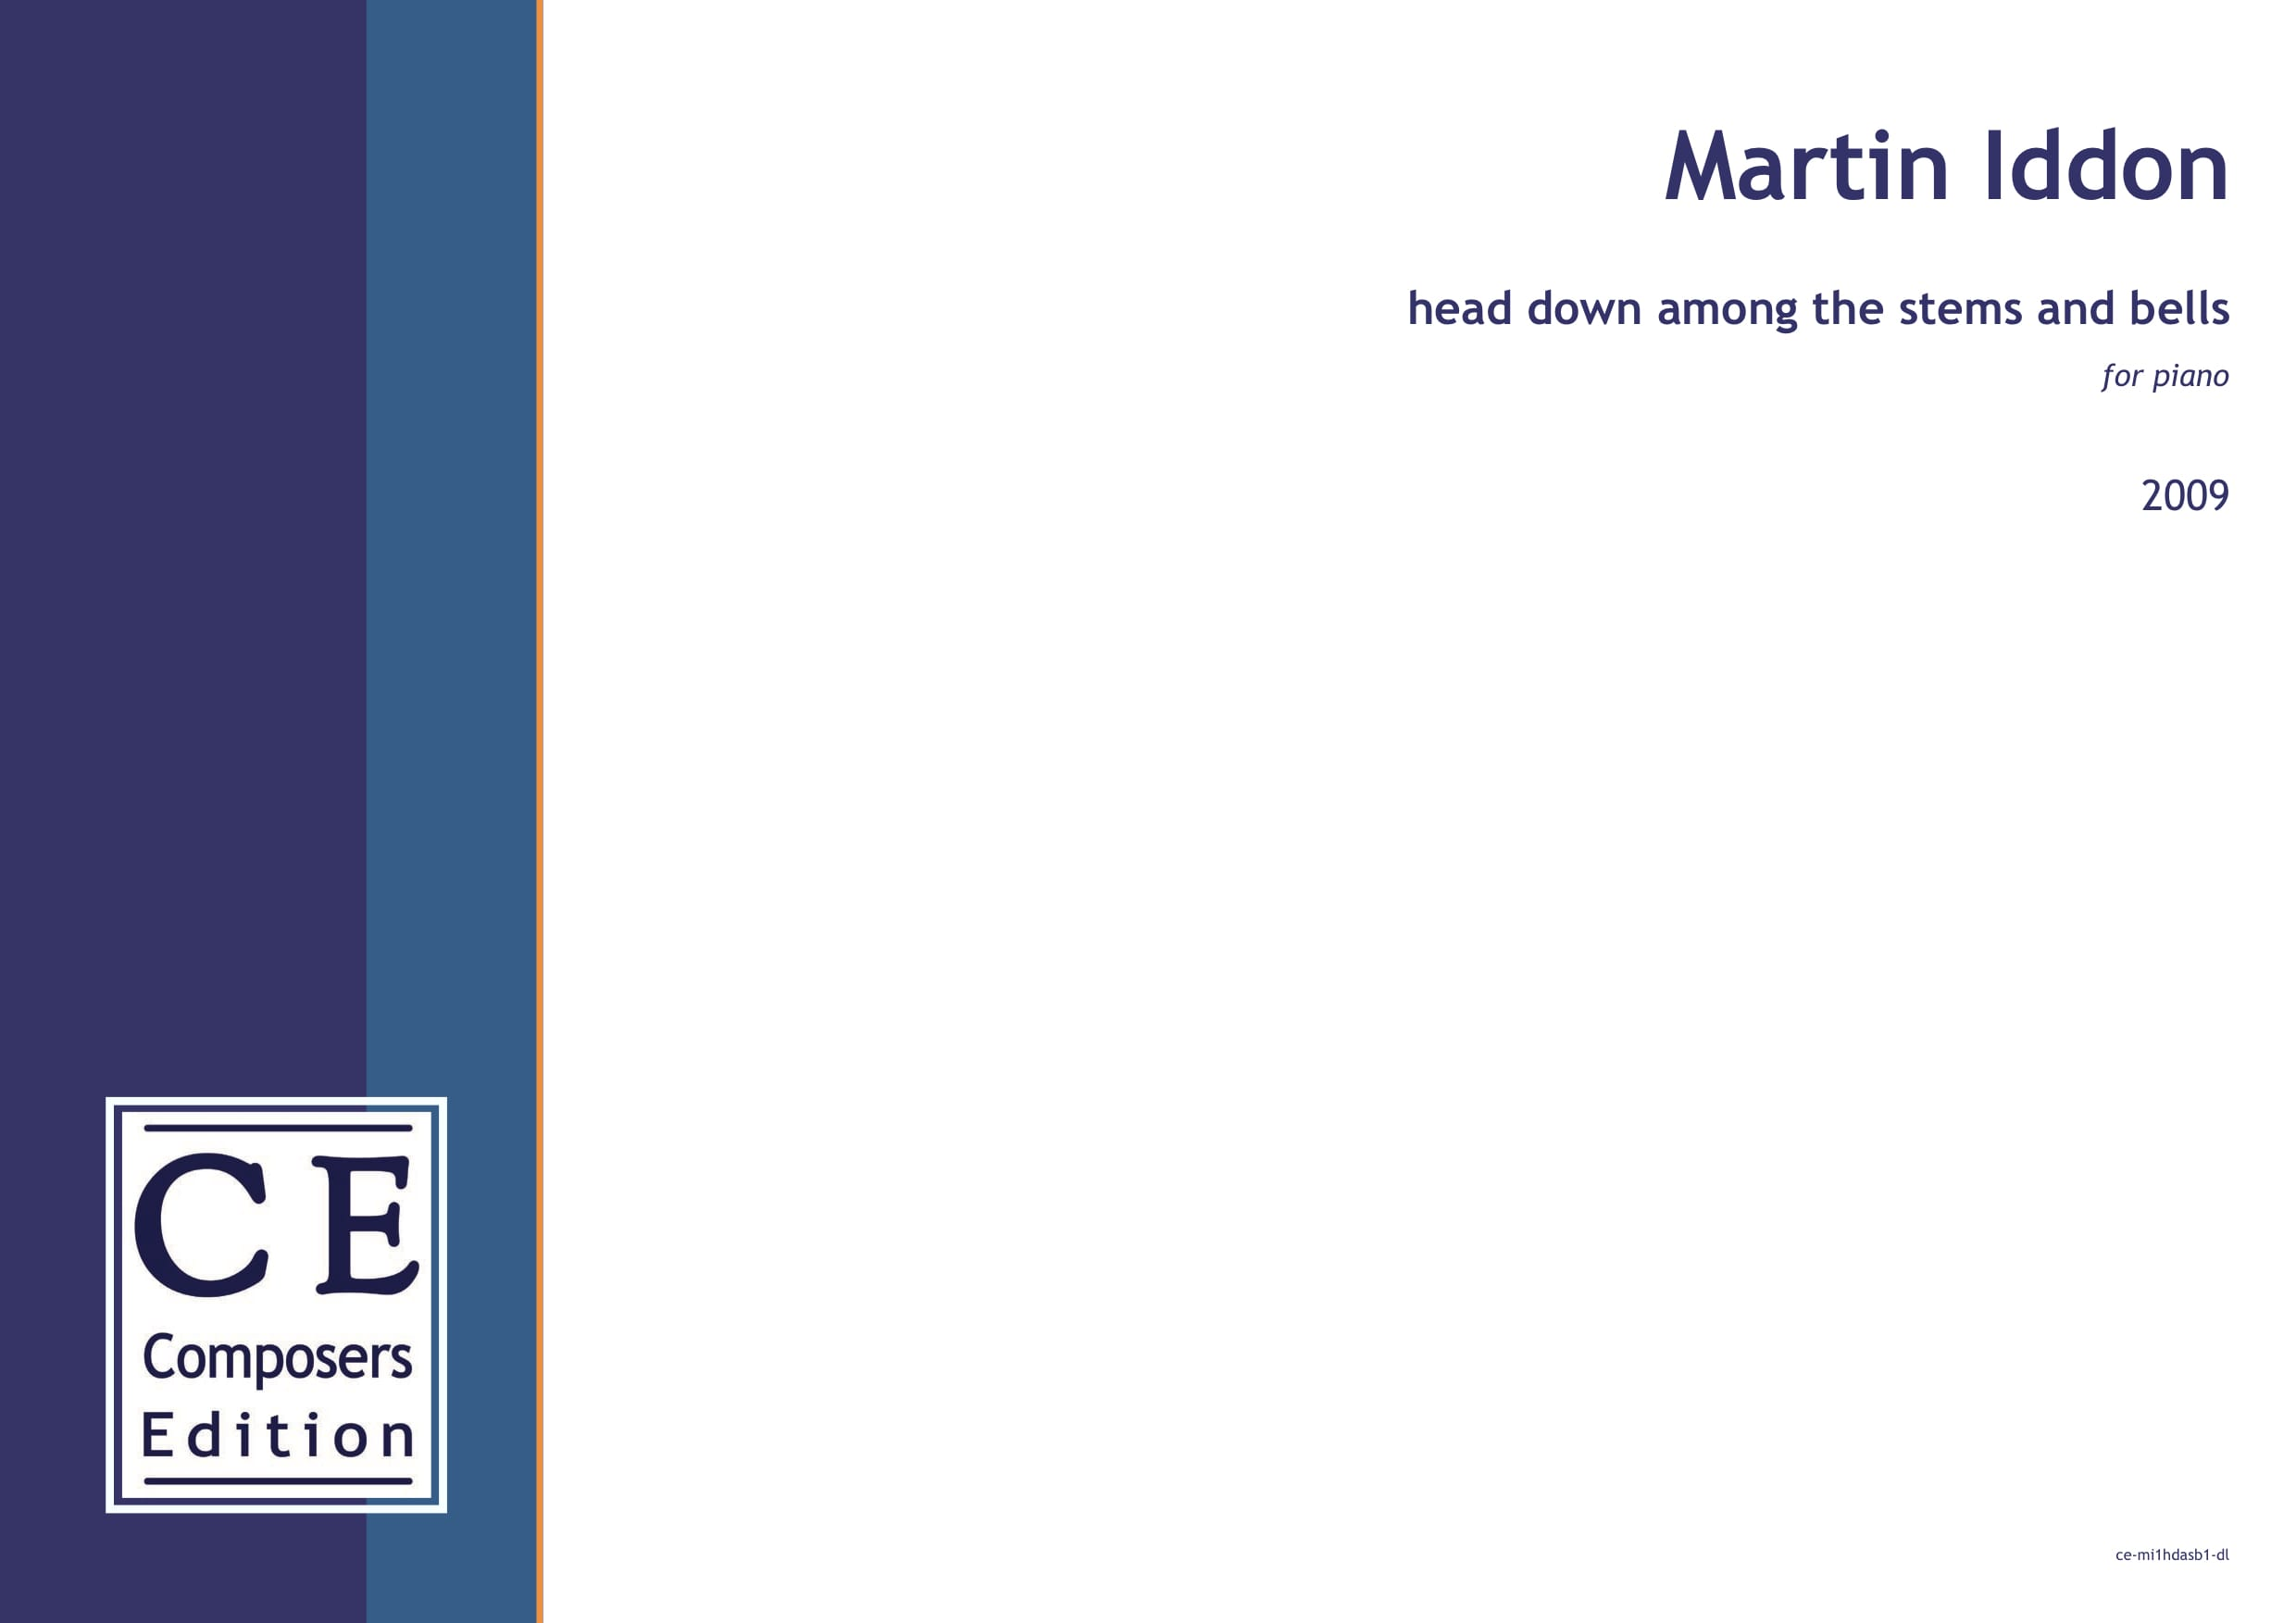 Martin Iddon: head down among the stems and bells for solo piano